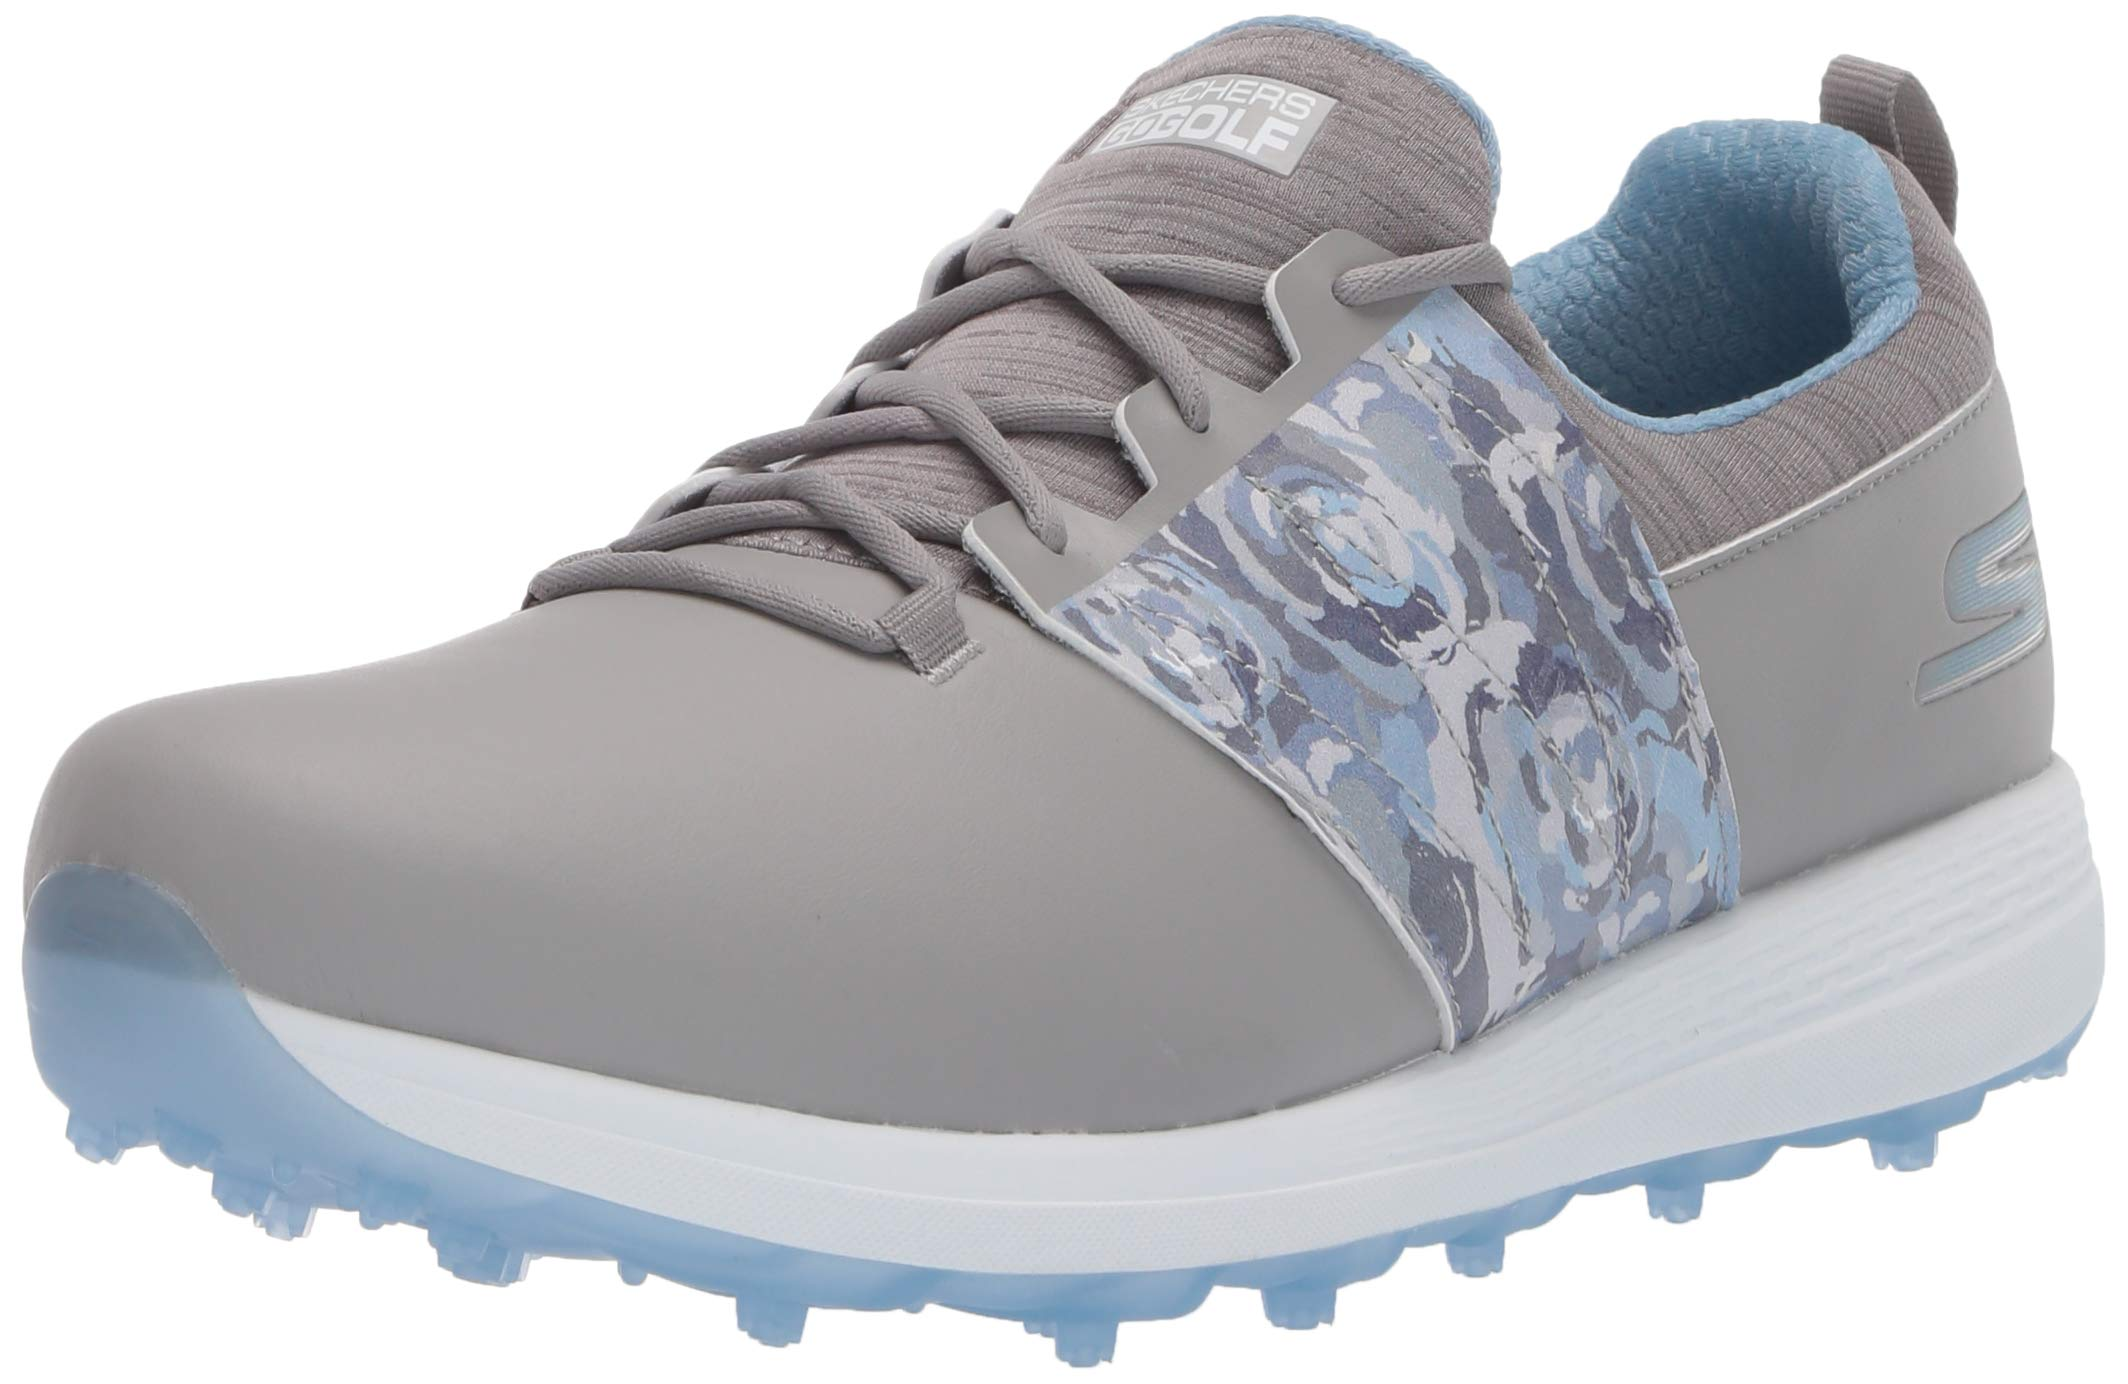 Skechers Women's Eagle Spikeless Golf Shoe, Gray/Blue Floral, 10 W US by Skechers